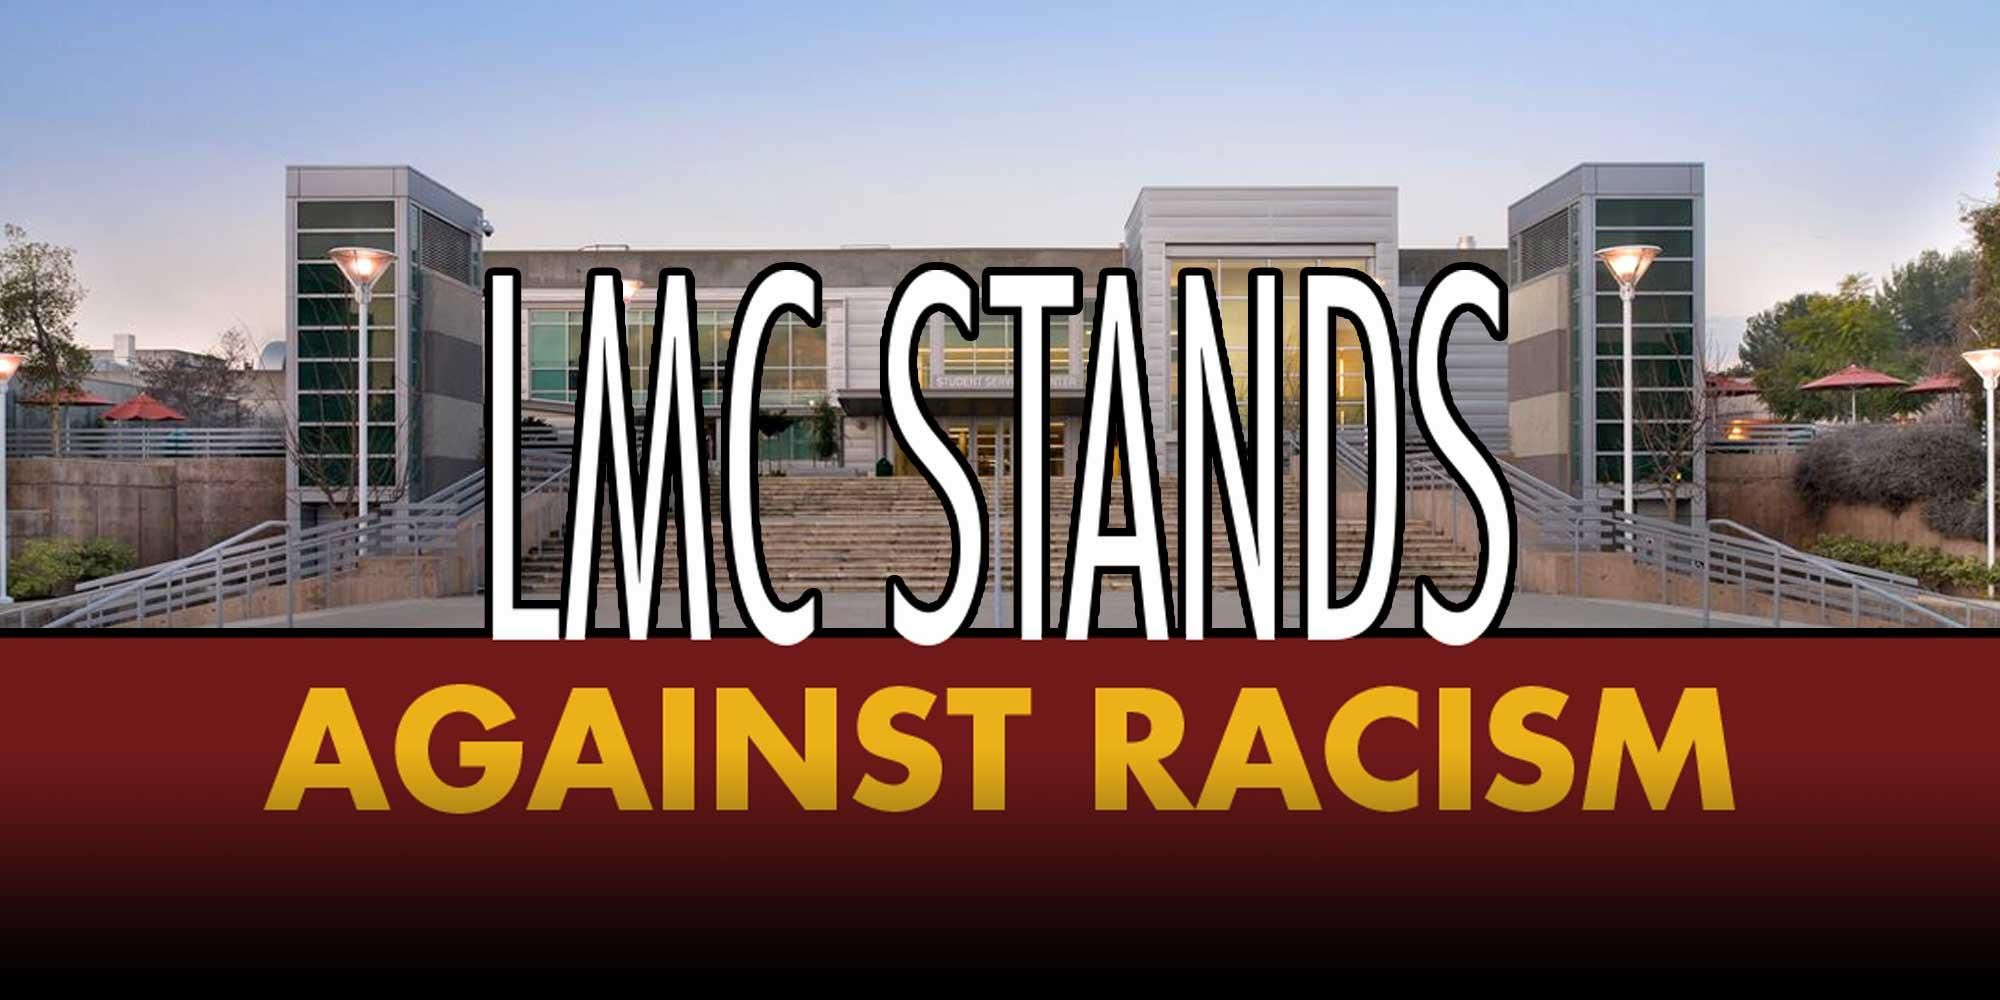 LMC Stands Against Racism